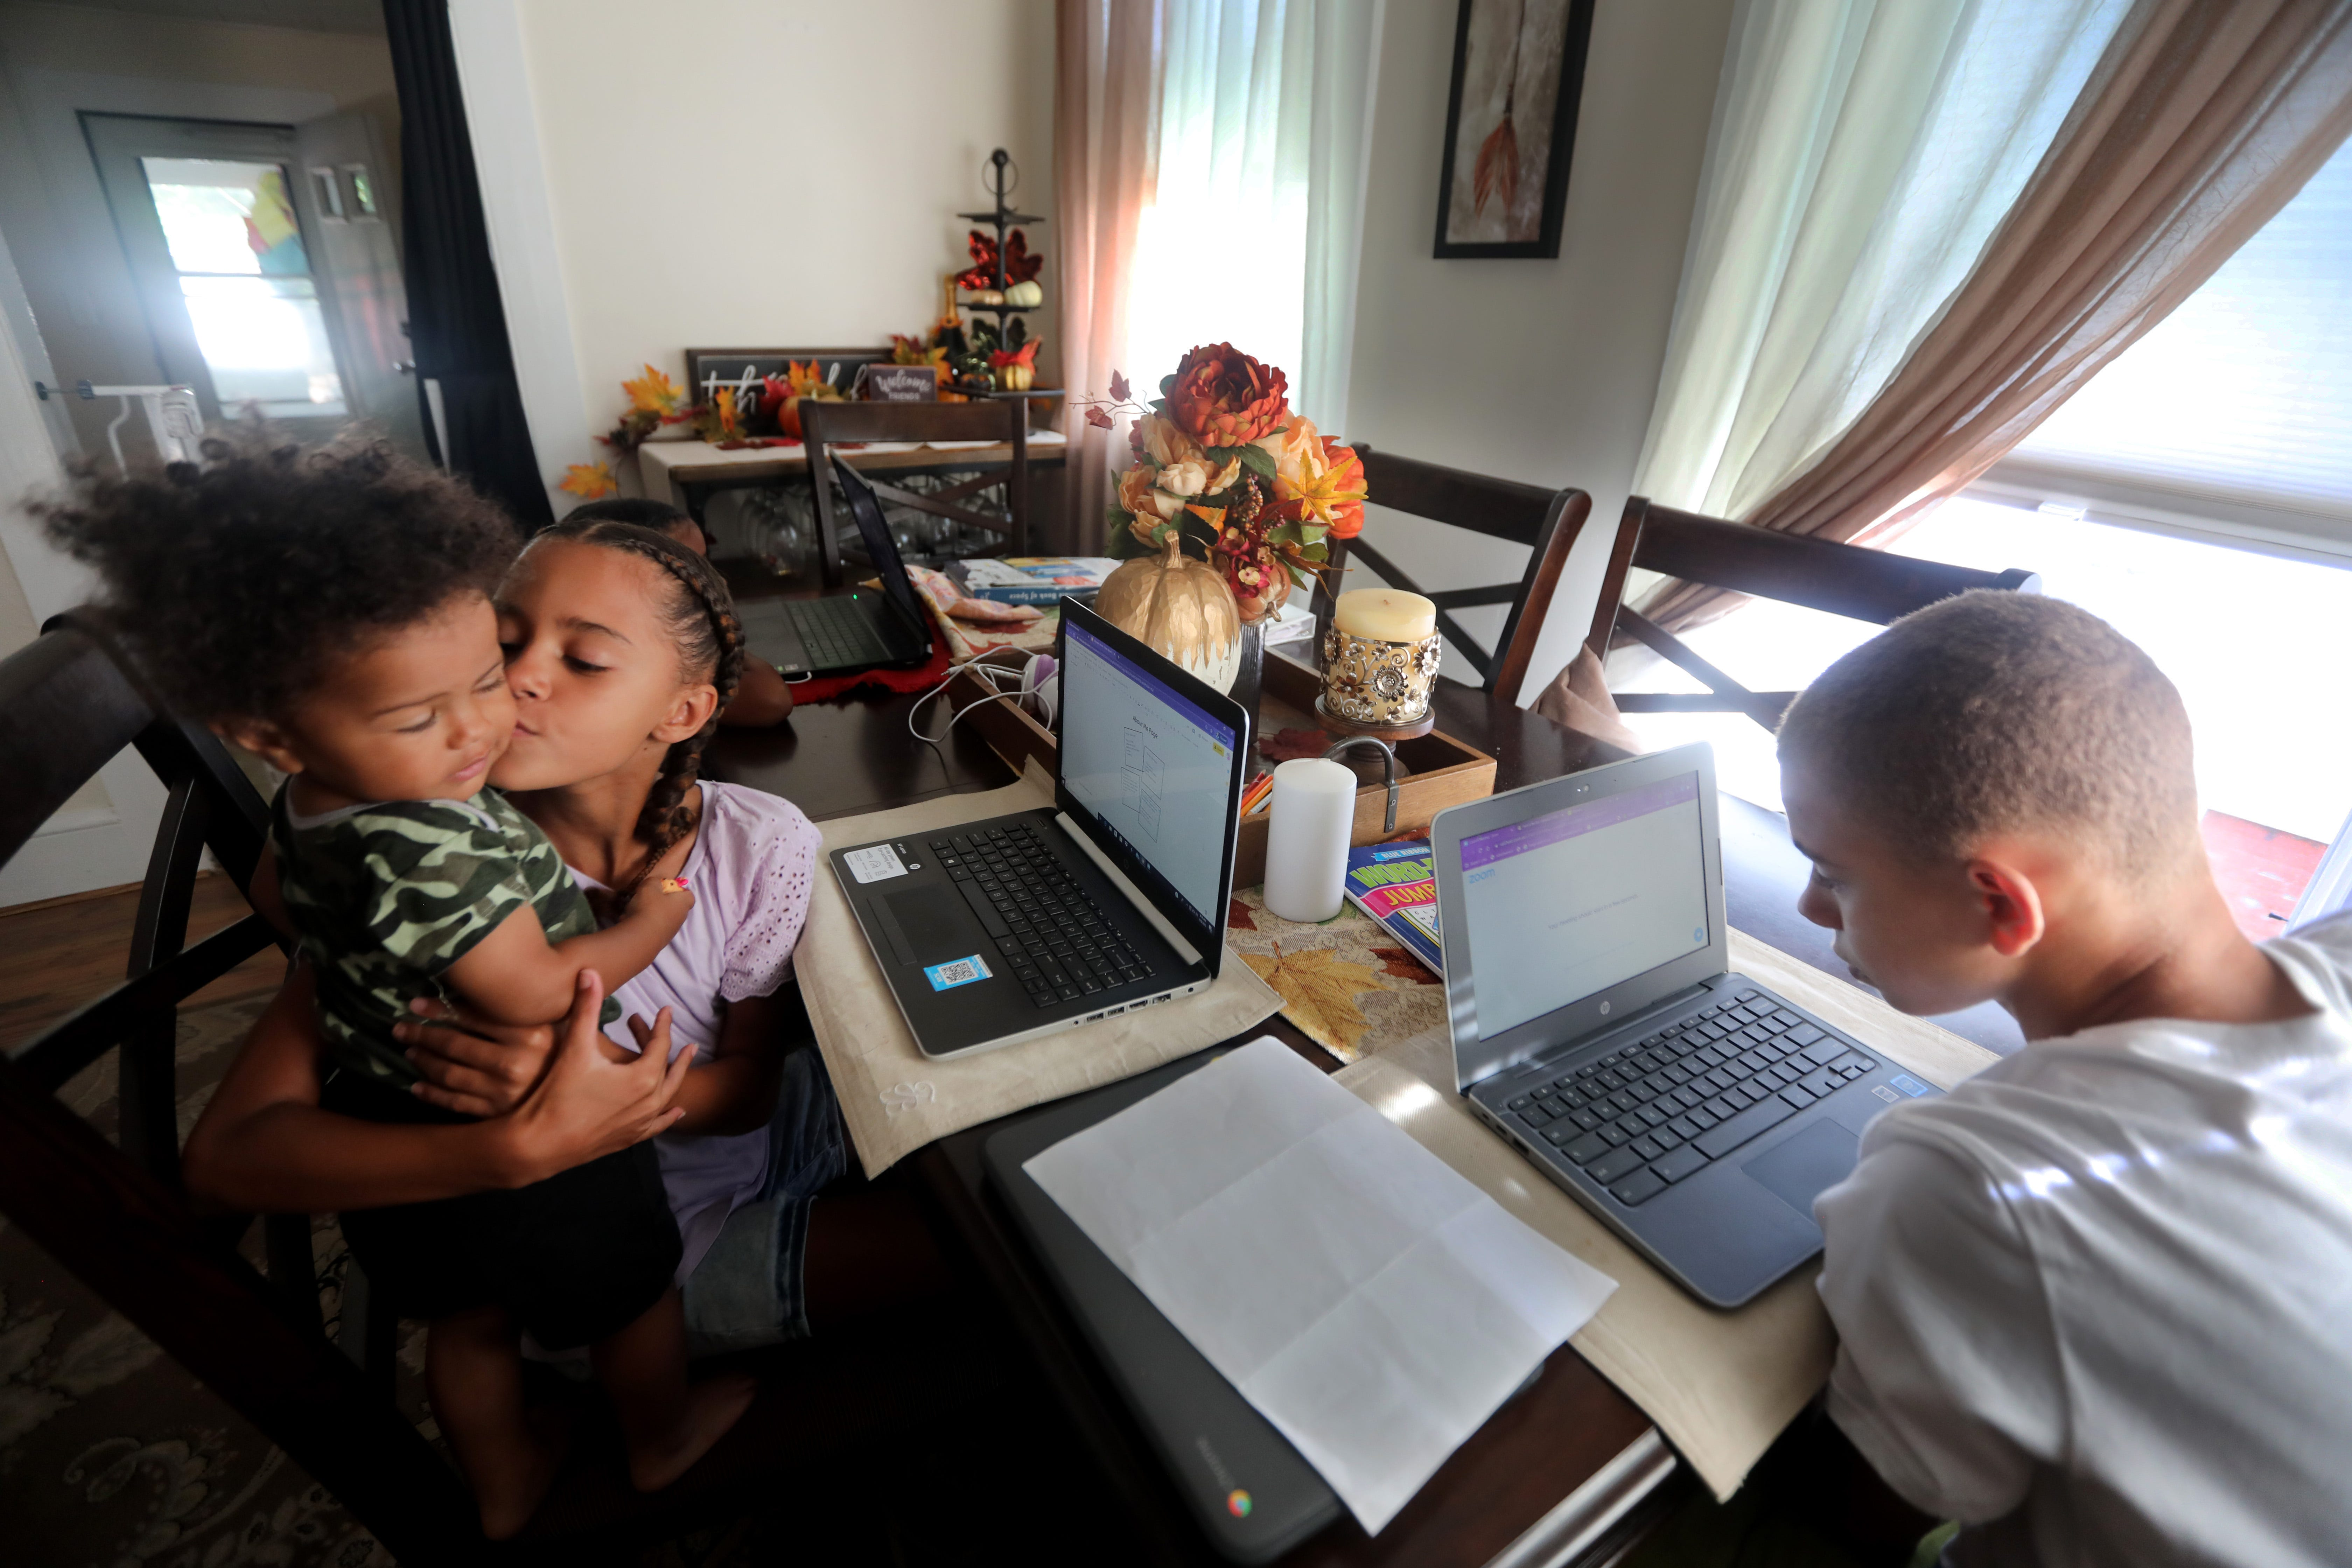 Families juggling remote learning for the first time faced a difficult learning curve. Here Leighann Jansen, 9, a fourth-grade student in Middletown, takes a moment from her work on the first day of school to kiss her 1-year old brother, Luca. There are seven people in the Jansen family, and remote learning has made multitasking essential.